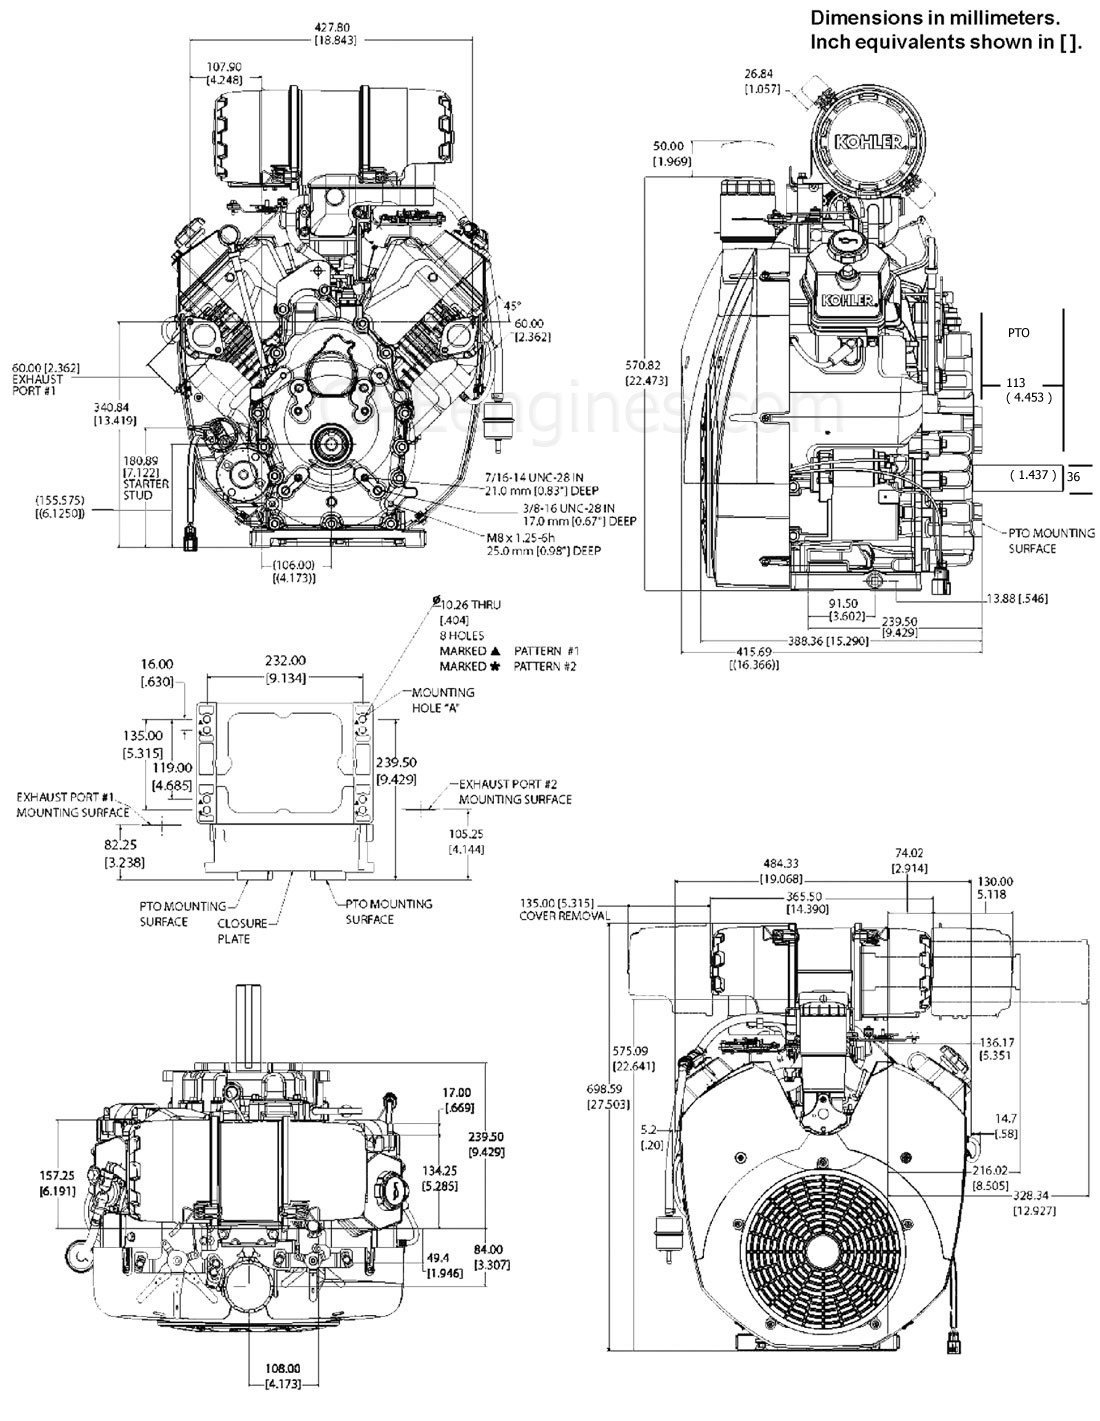 ch940 ch960 ch980 ch1000 drawings   kohler engines and